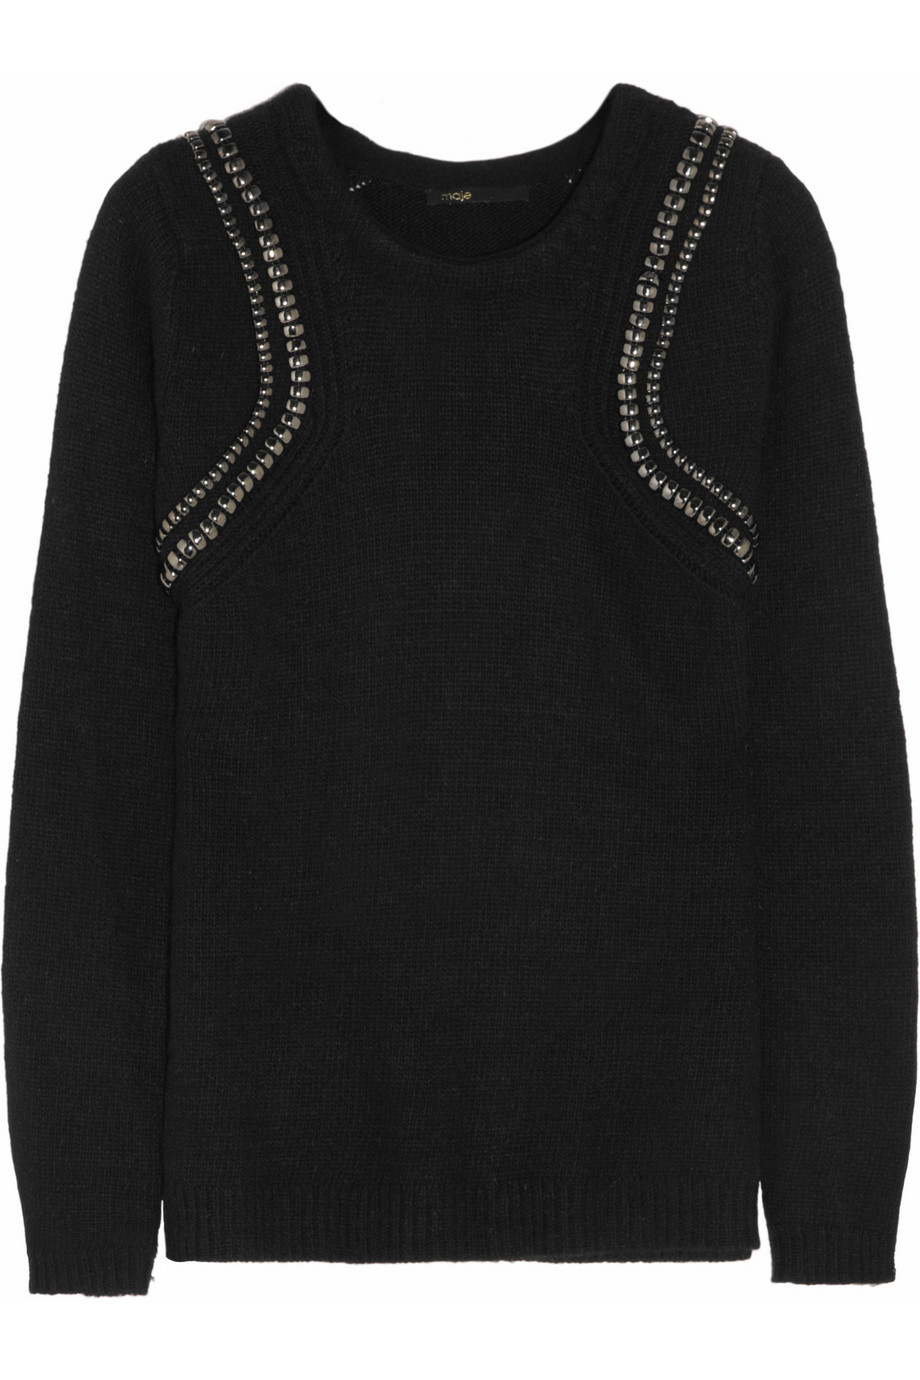 Maje   Embellished knitted sweater   NET-A-PORTER.COM_files.jpg